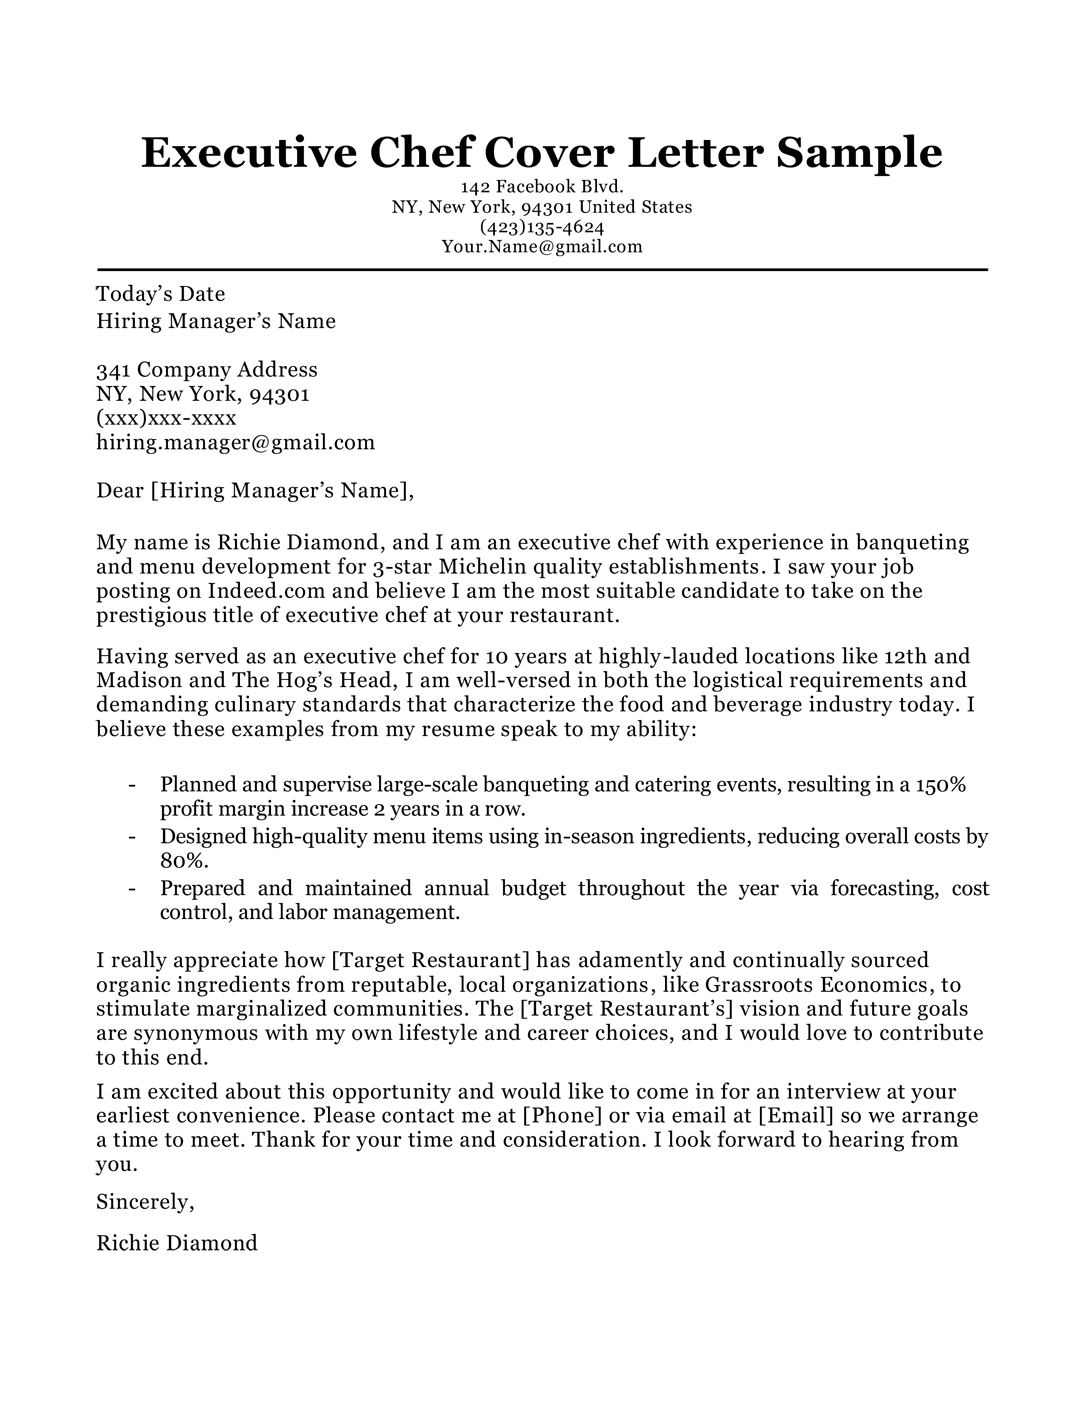 Executive chef cover letter sample